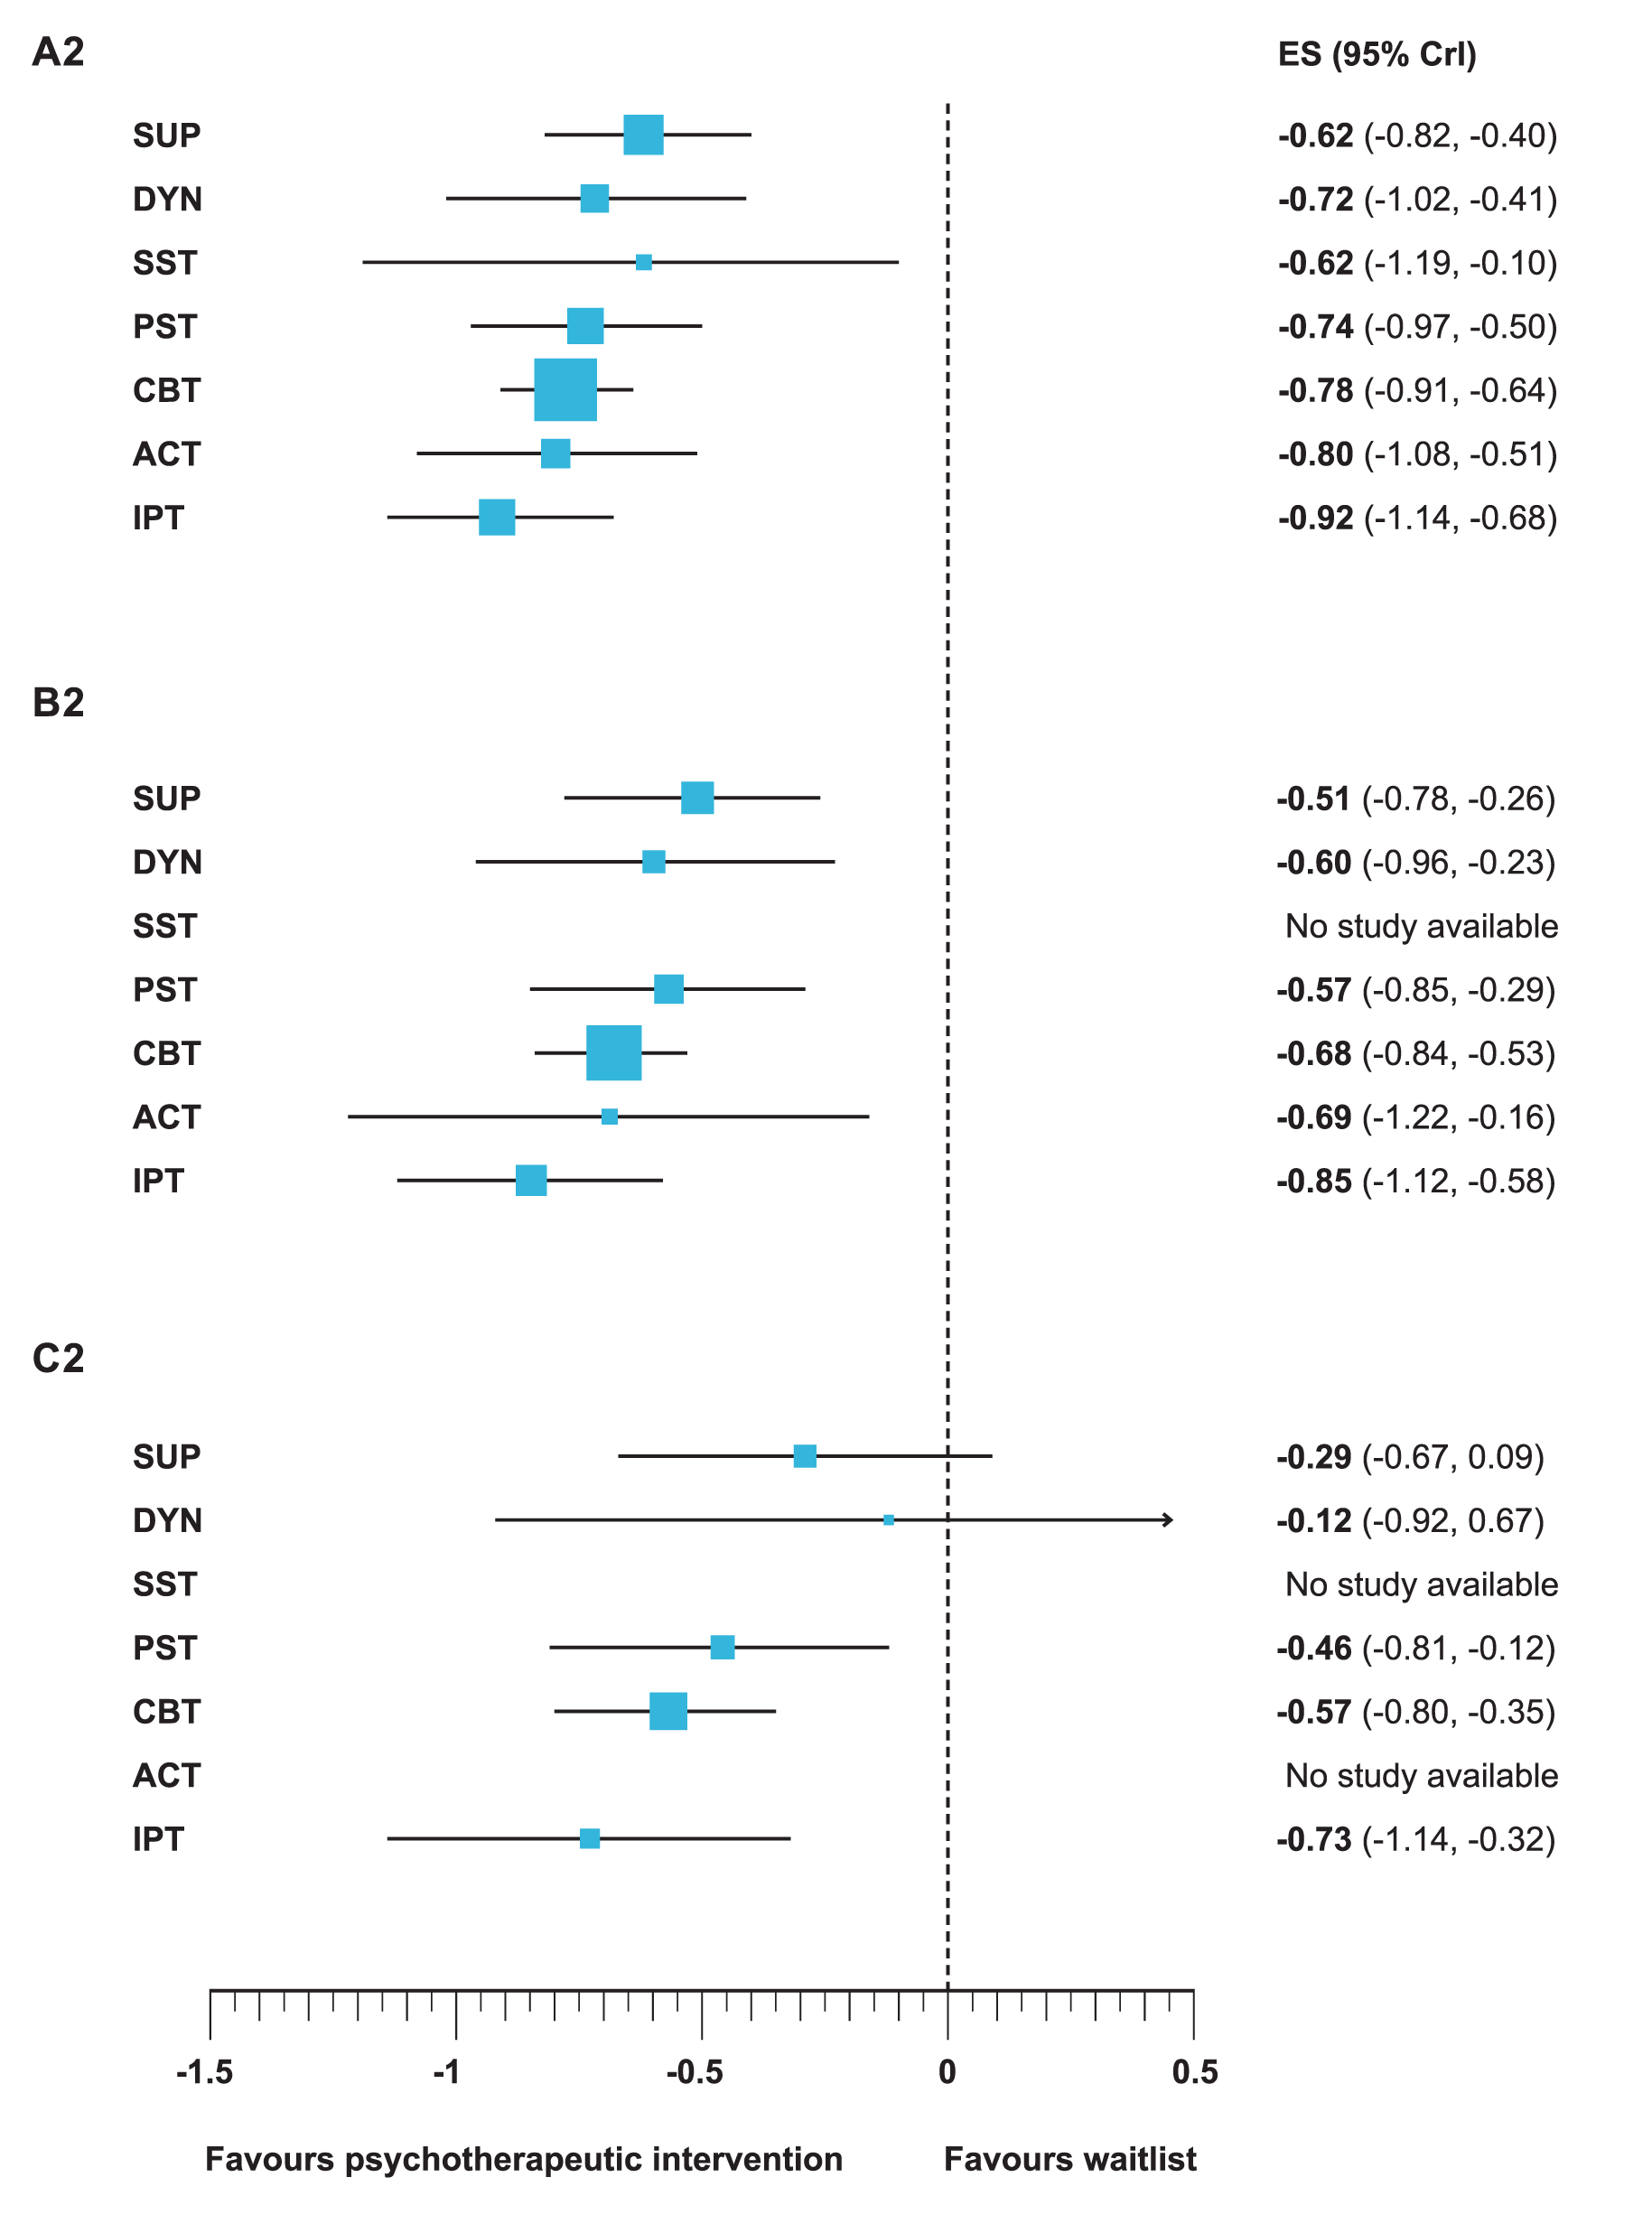 Efficacy of different psychotherapeutic intervention compared to waitlist of all trials (A2), moderately sized trials (B2), and large trials (C2).